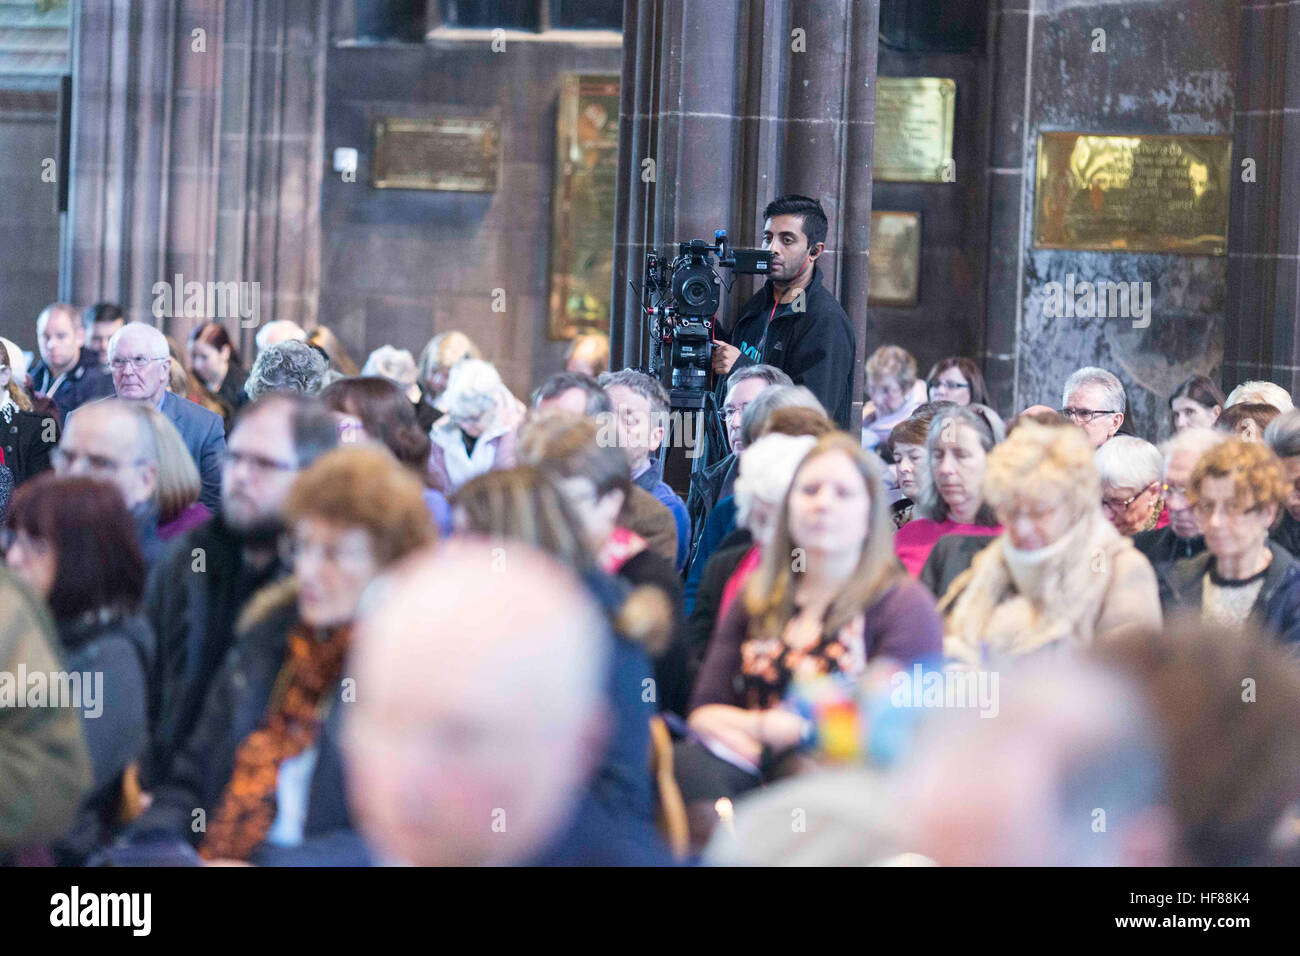 Interior of Manchester Cathedral during a service. A TV camera records the service - Stock Image